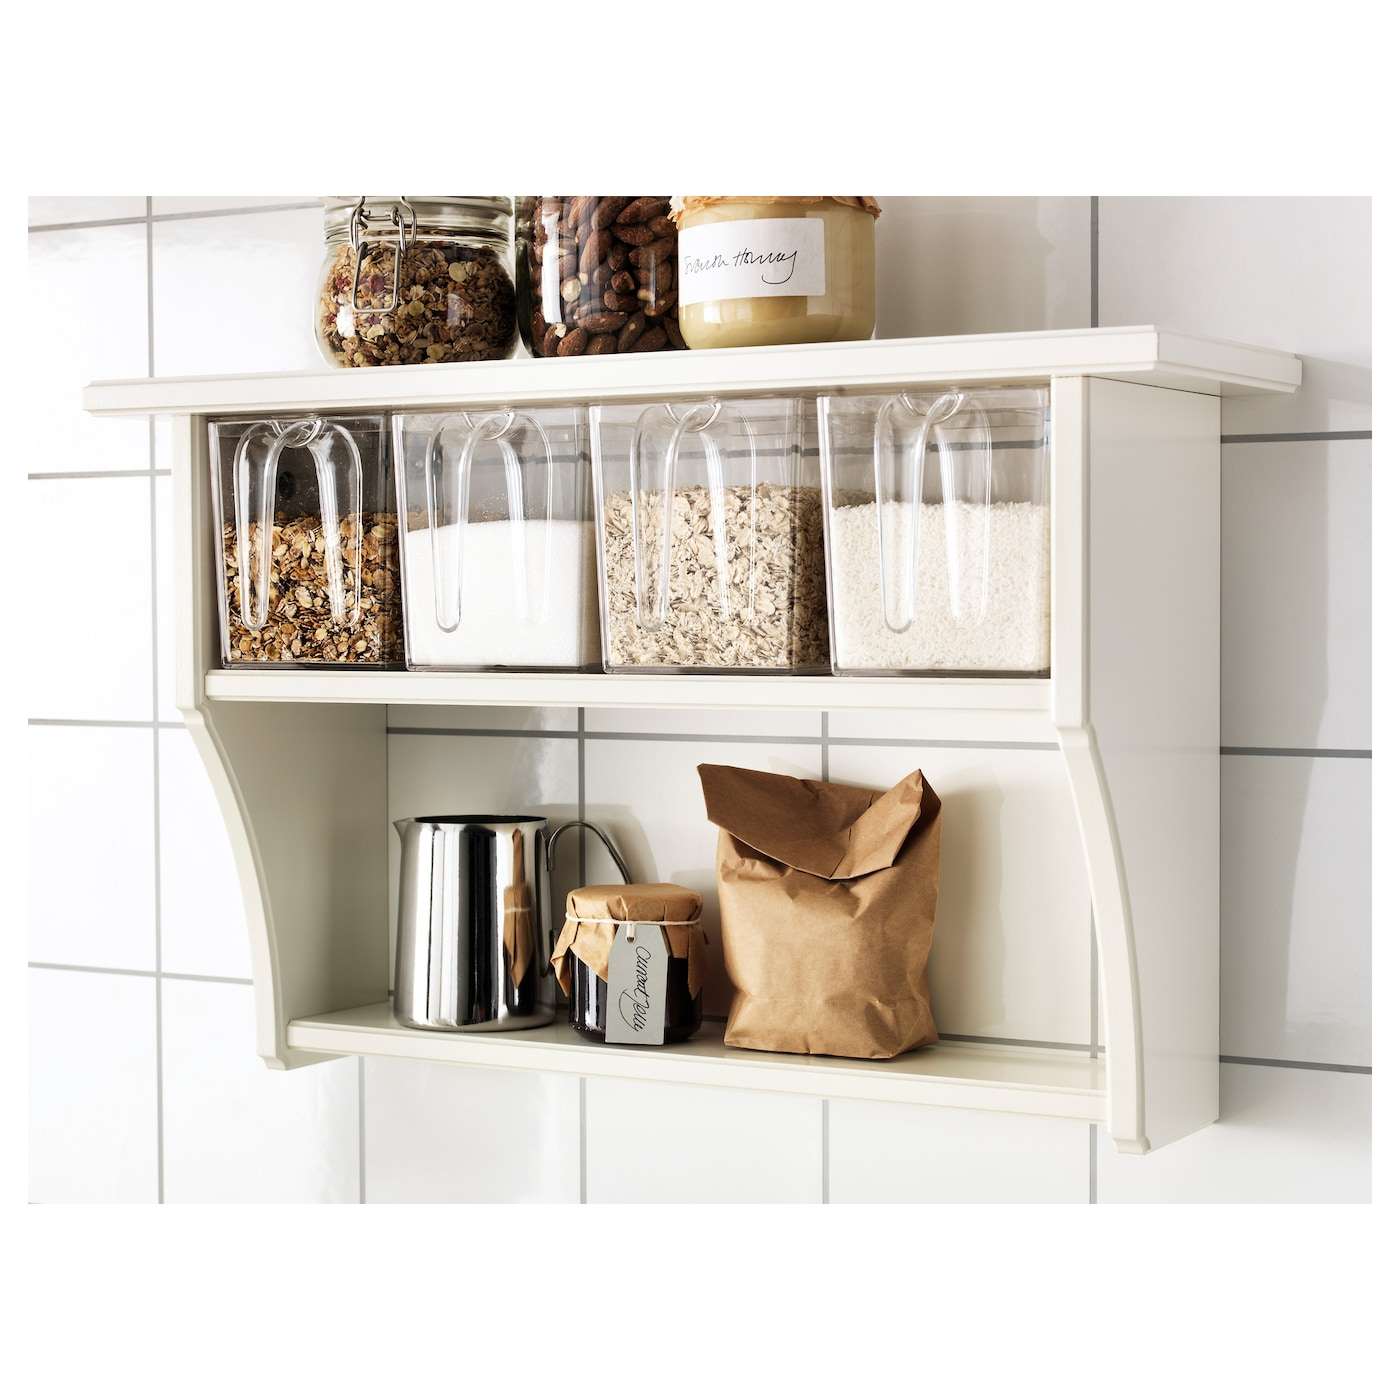 Stenstorp wall shelf with drawers white 60 x 37 cm ikea for Piattaia ikea